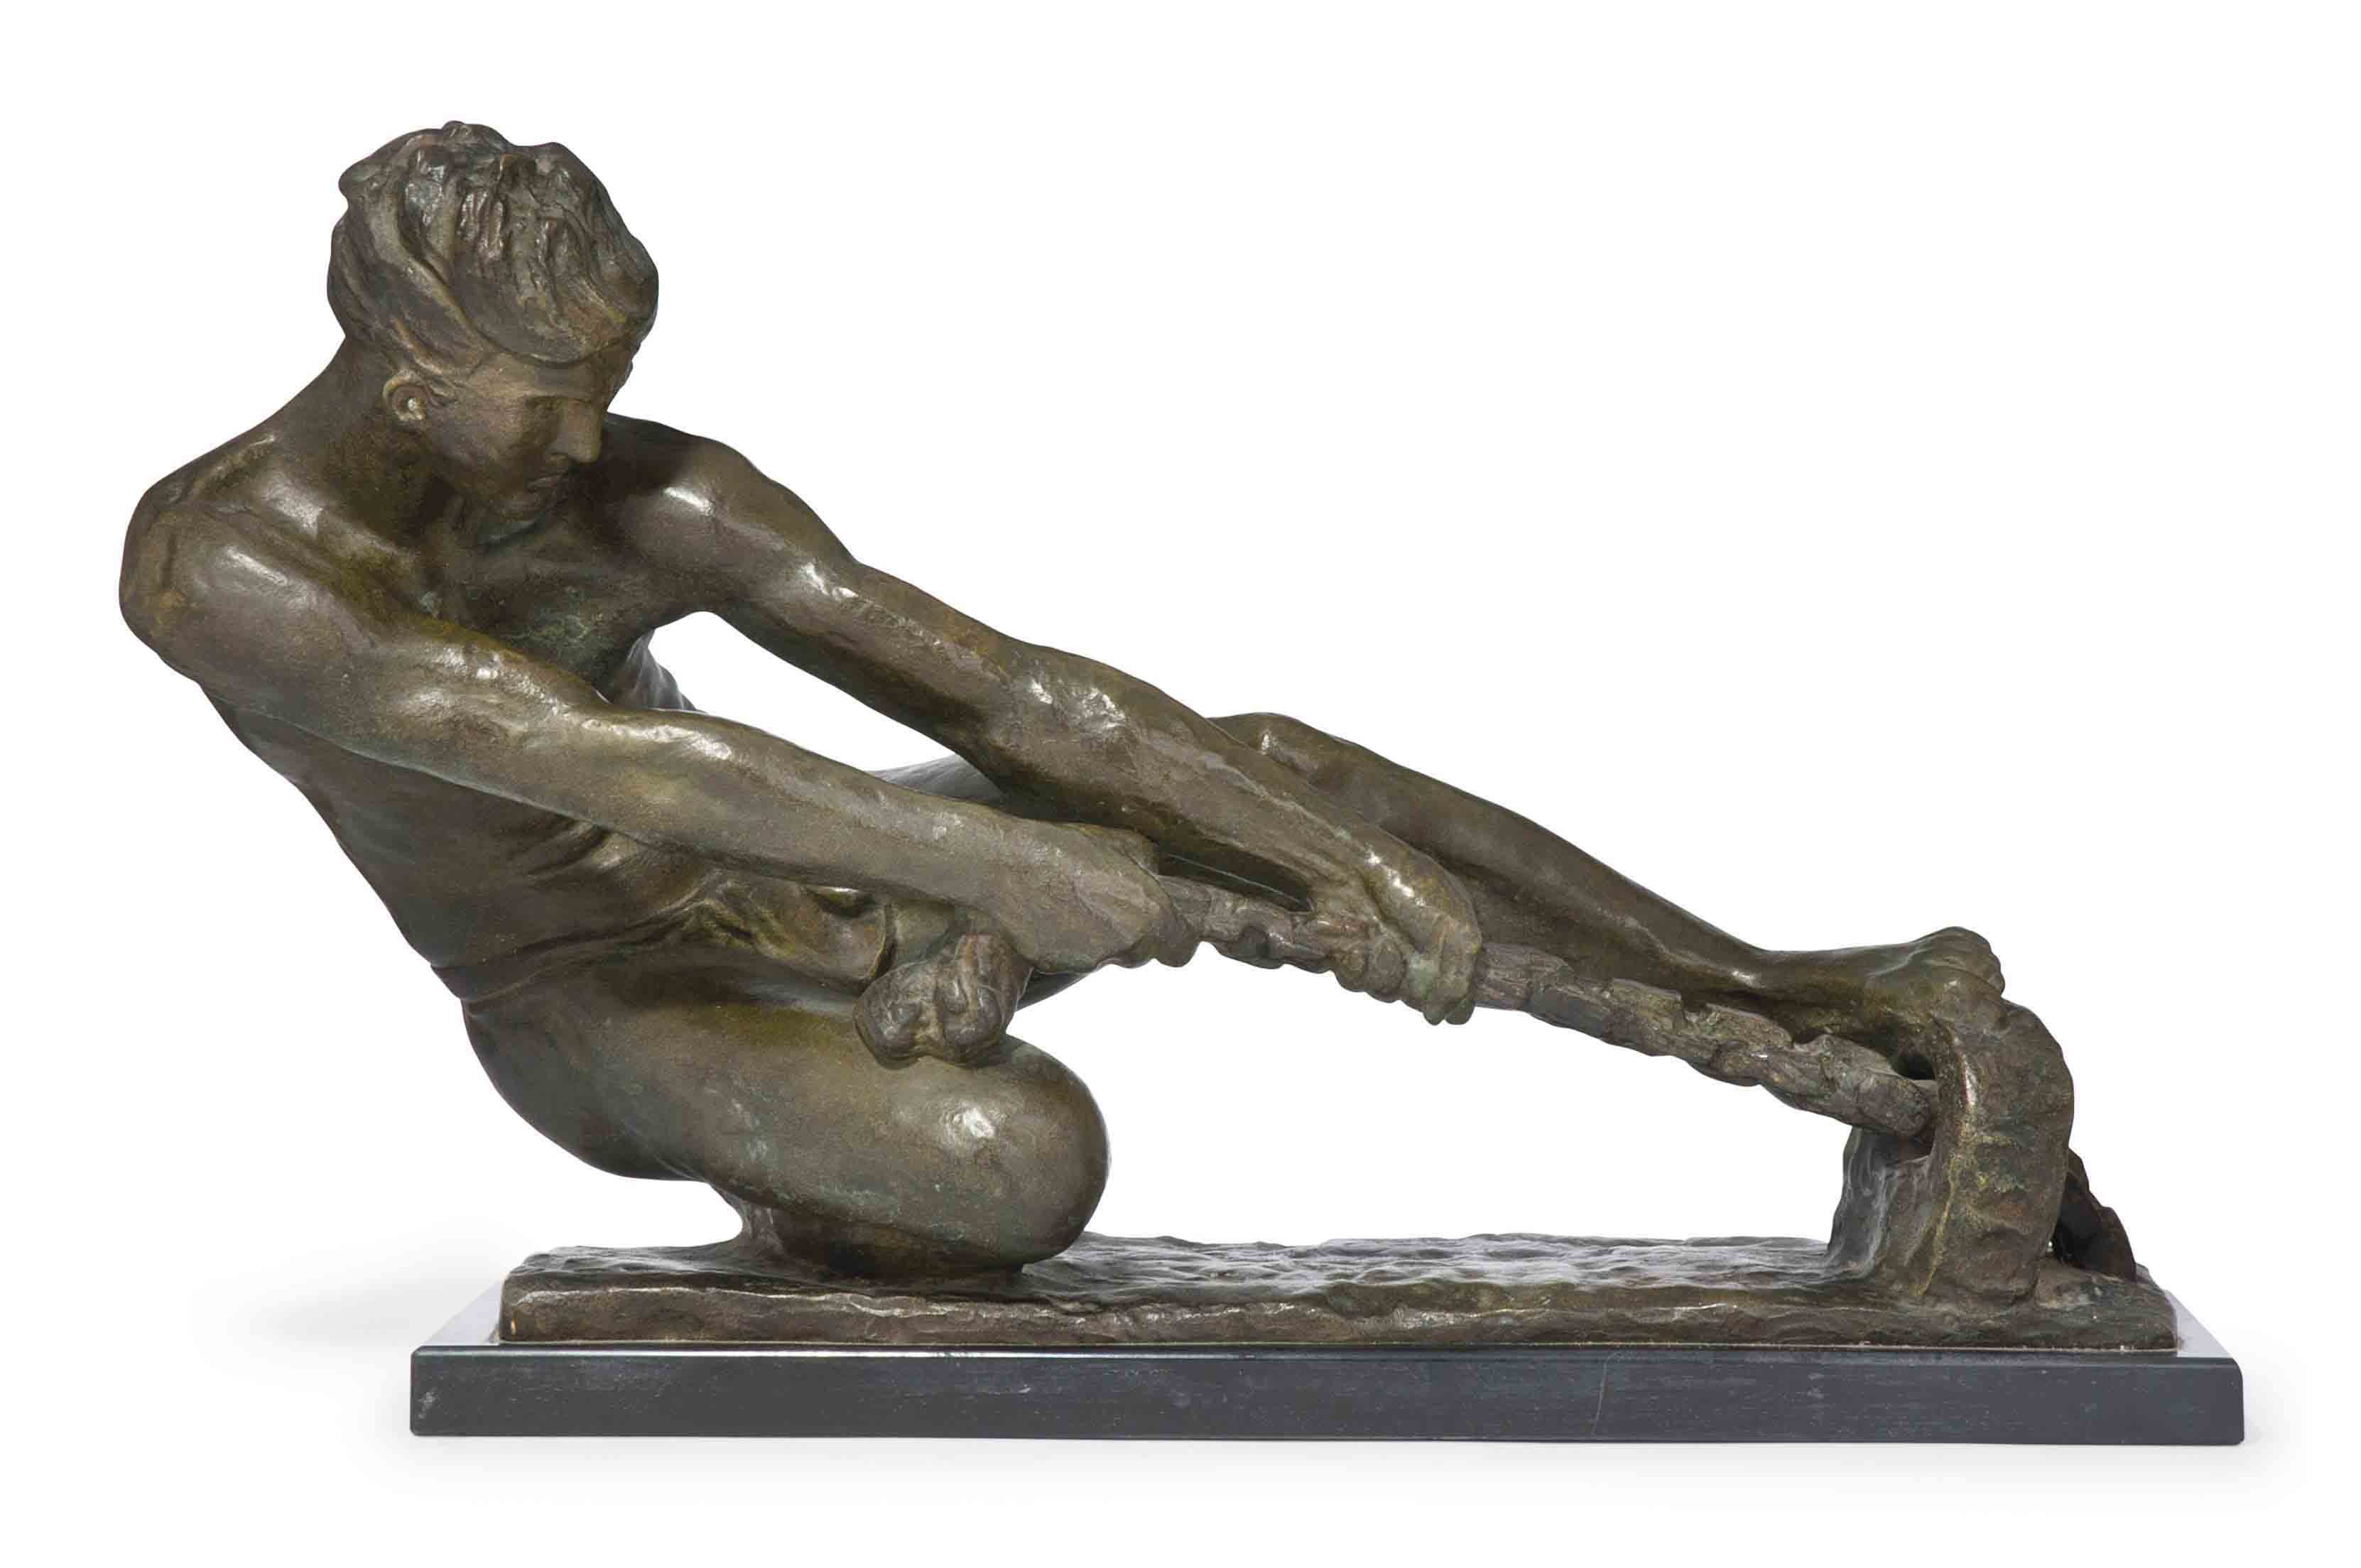 AN ALEXANDRE KELETY COLD-PAINTED BRONZE FIGURE